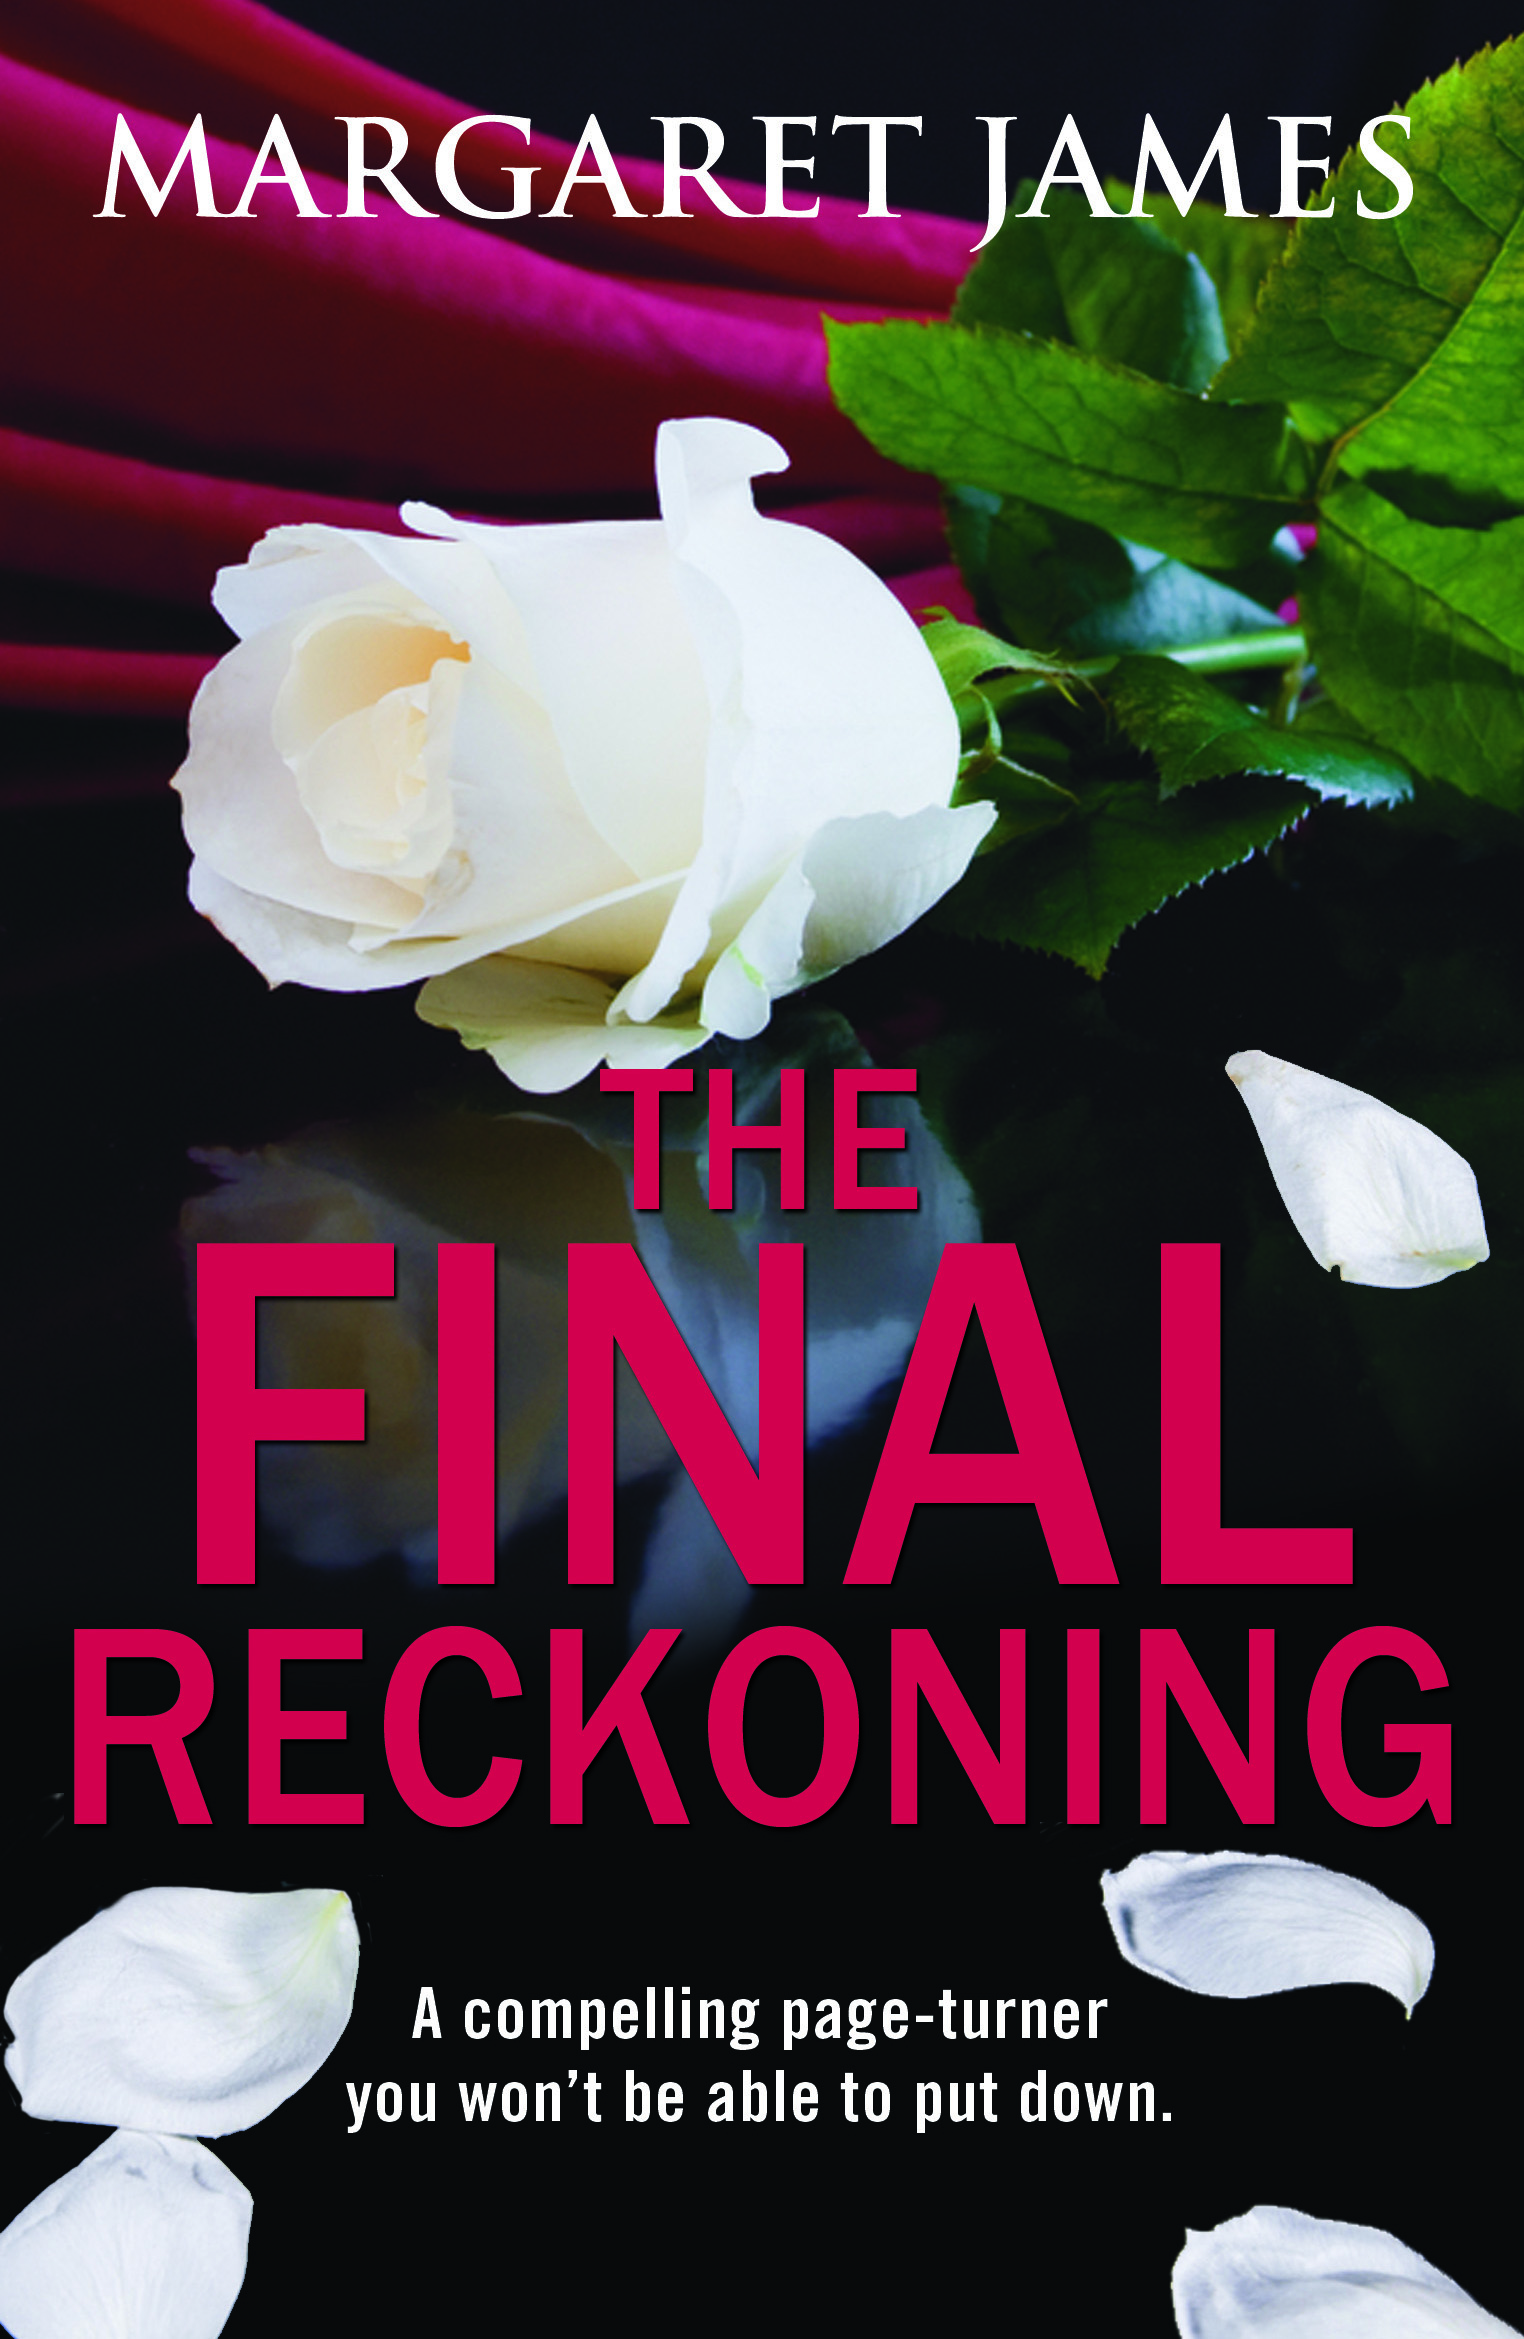 THE FINAL RECKONING_FRONT.jpg